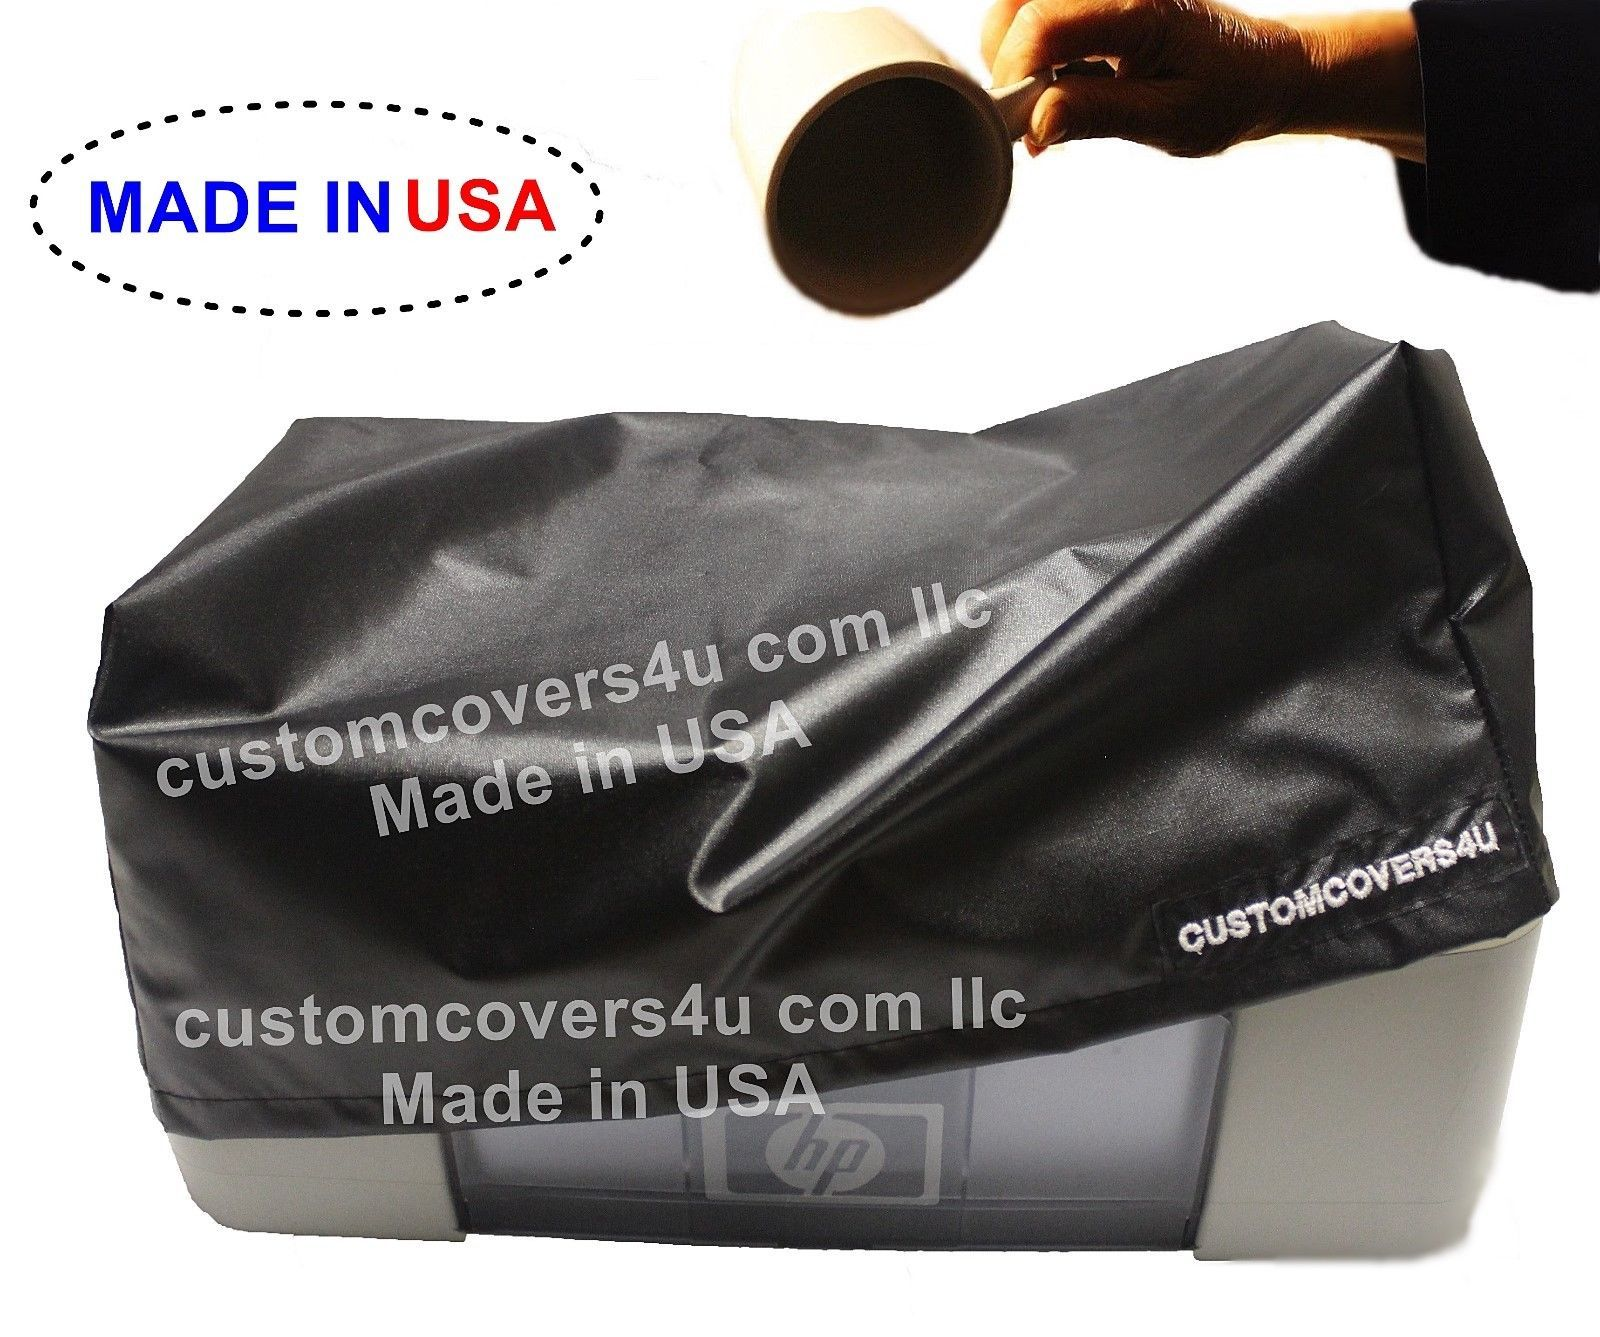 Brother HL-3180CDW PRINTER DUST COVER WATER REPELLENT + EMBROIDERY ! USA - $18.99